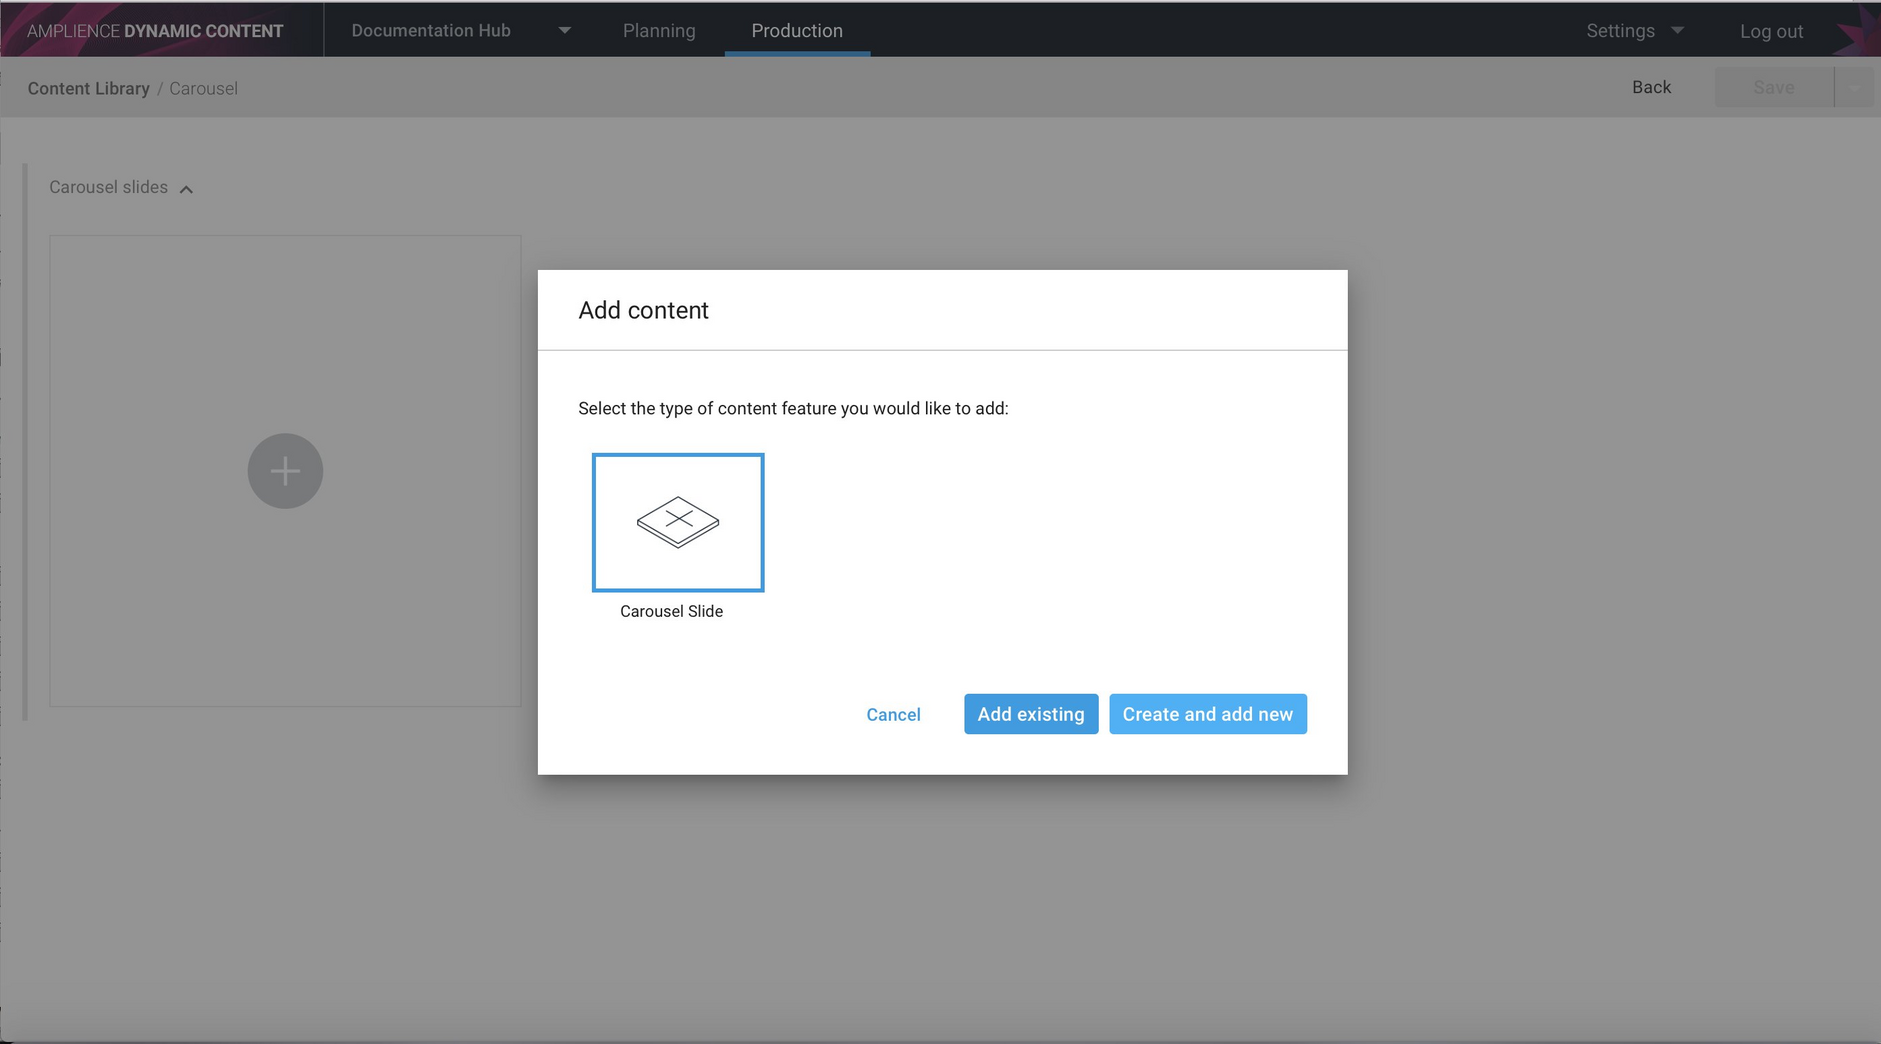 Add an existing carousel slide or create a new one